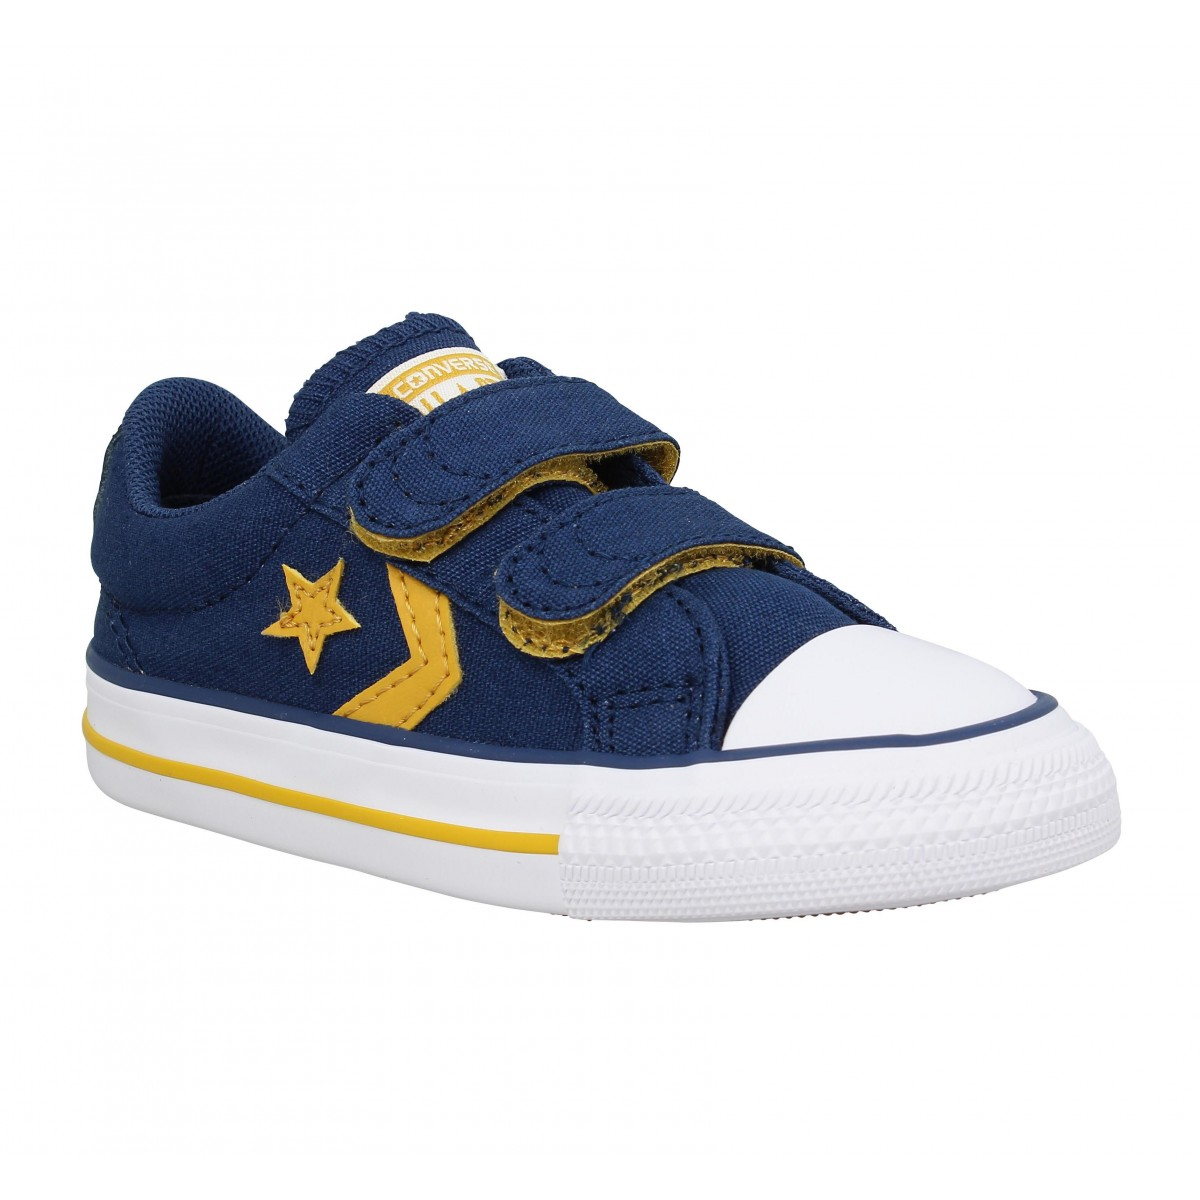 Baskets CONVERSE Star Player 2V toile Enfant Navy